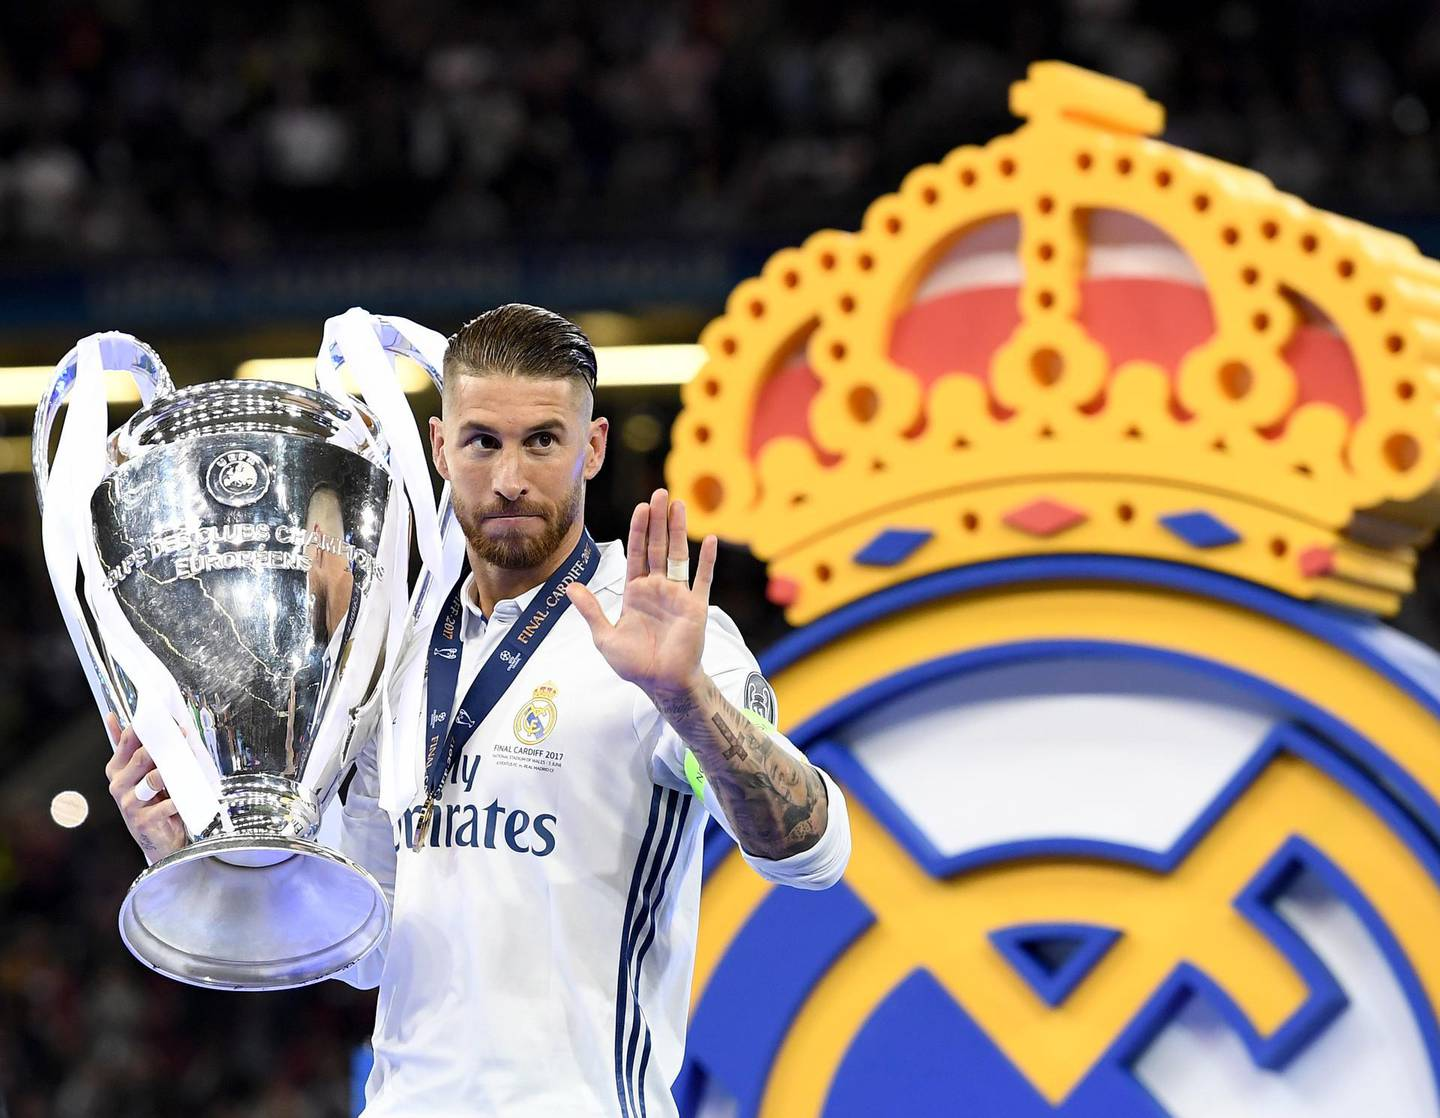 epa09278832 (FILE) - Real Madrid's Sergio Ramos receives the trophy after winning the UEFA Champions League final between Juventus FC and Real Madrid at the National Stadium of Wales in Cardiff, Britain, 03 June 2017 (reissued 17 June 2021). Real Madrid's icon Sergio Ramos will leave the club after his contract expires on 30 June 2021. The club announced to bid Ramos farewell on 17 June 2021 in a virtually held press conference.  EPA/ANDY RAIN *** Local Caption *** 53565189